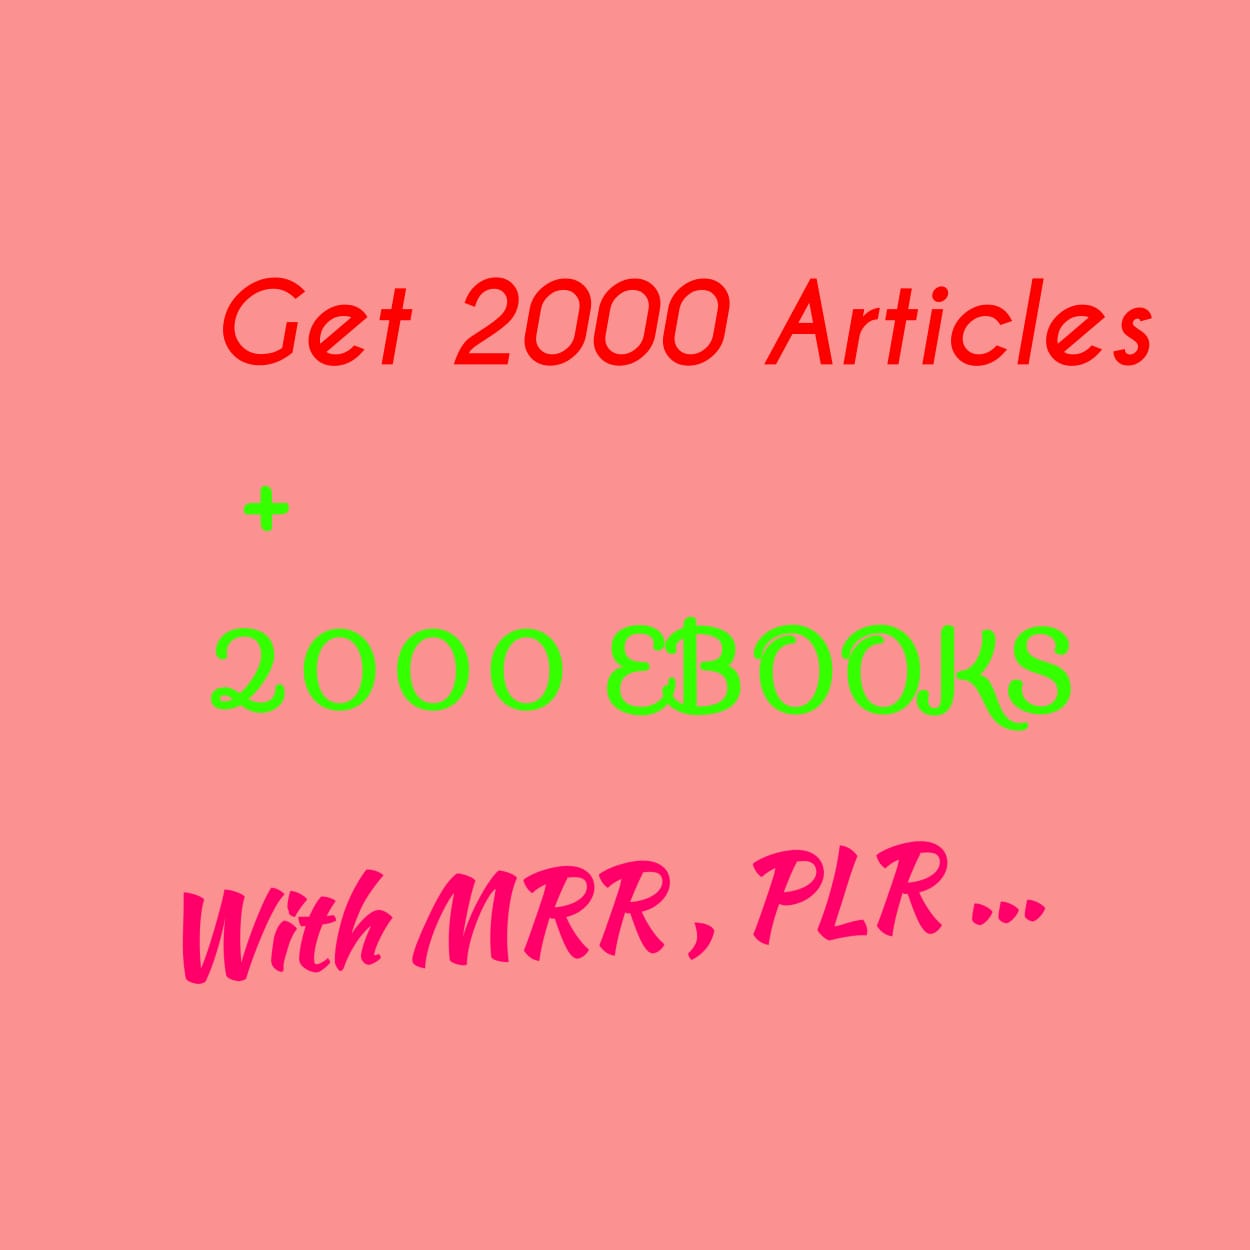 BUY 2000 New EBooks + 2000 New Articles With Resell Rights